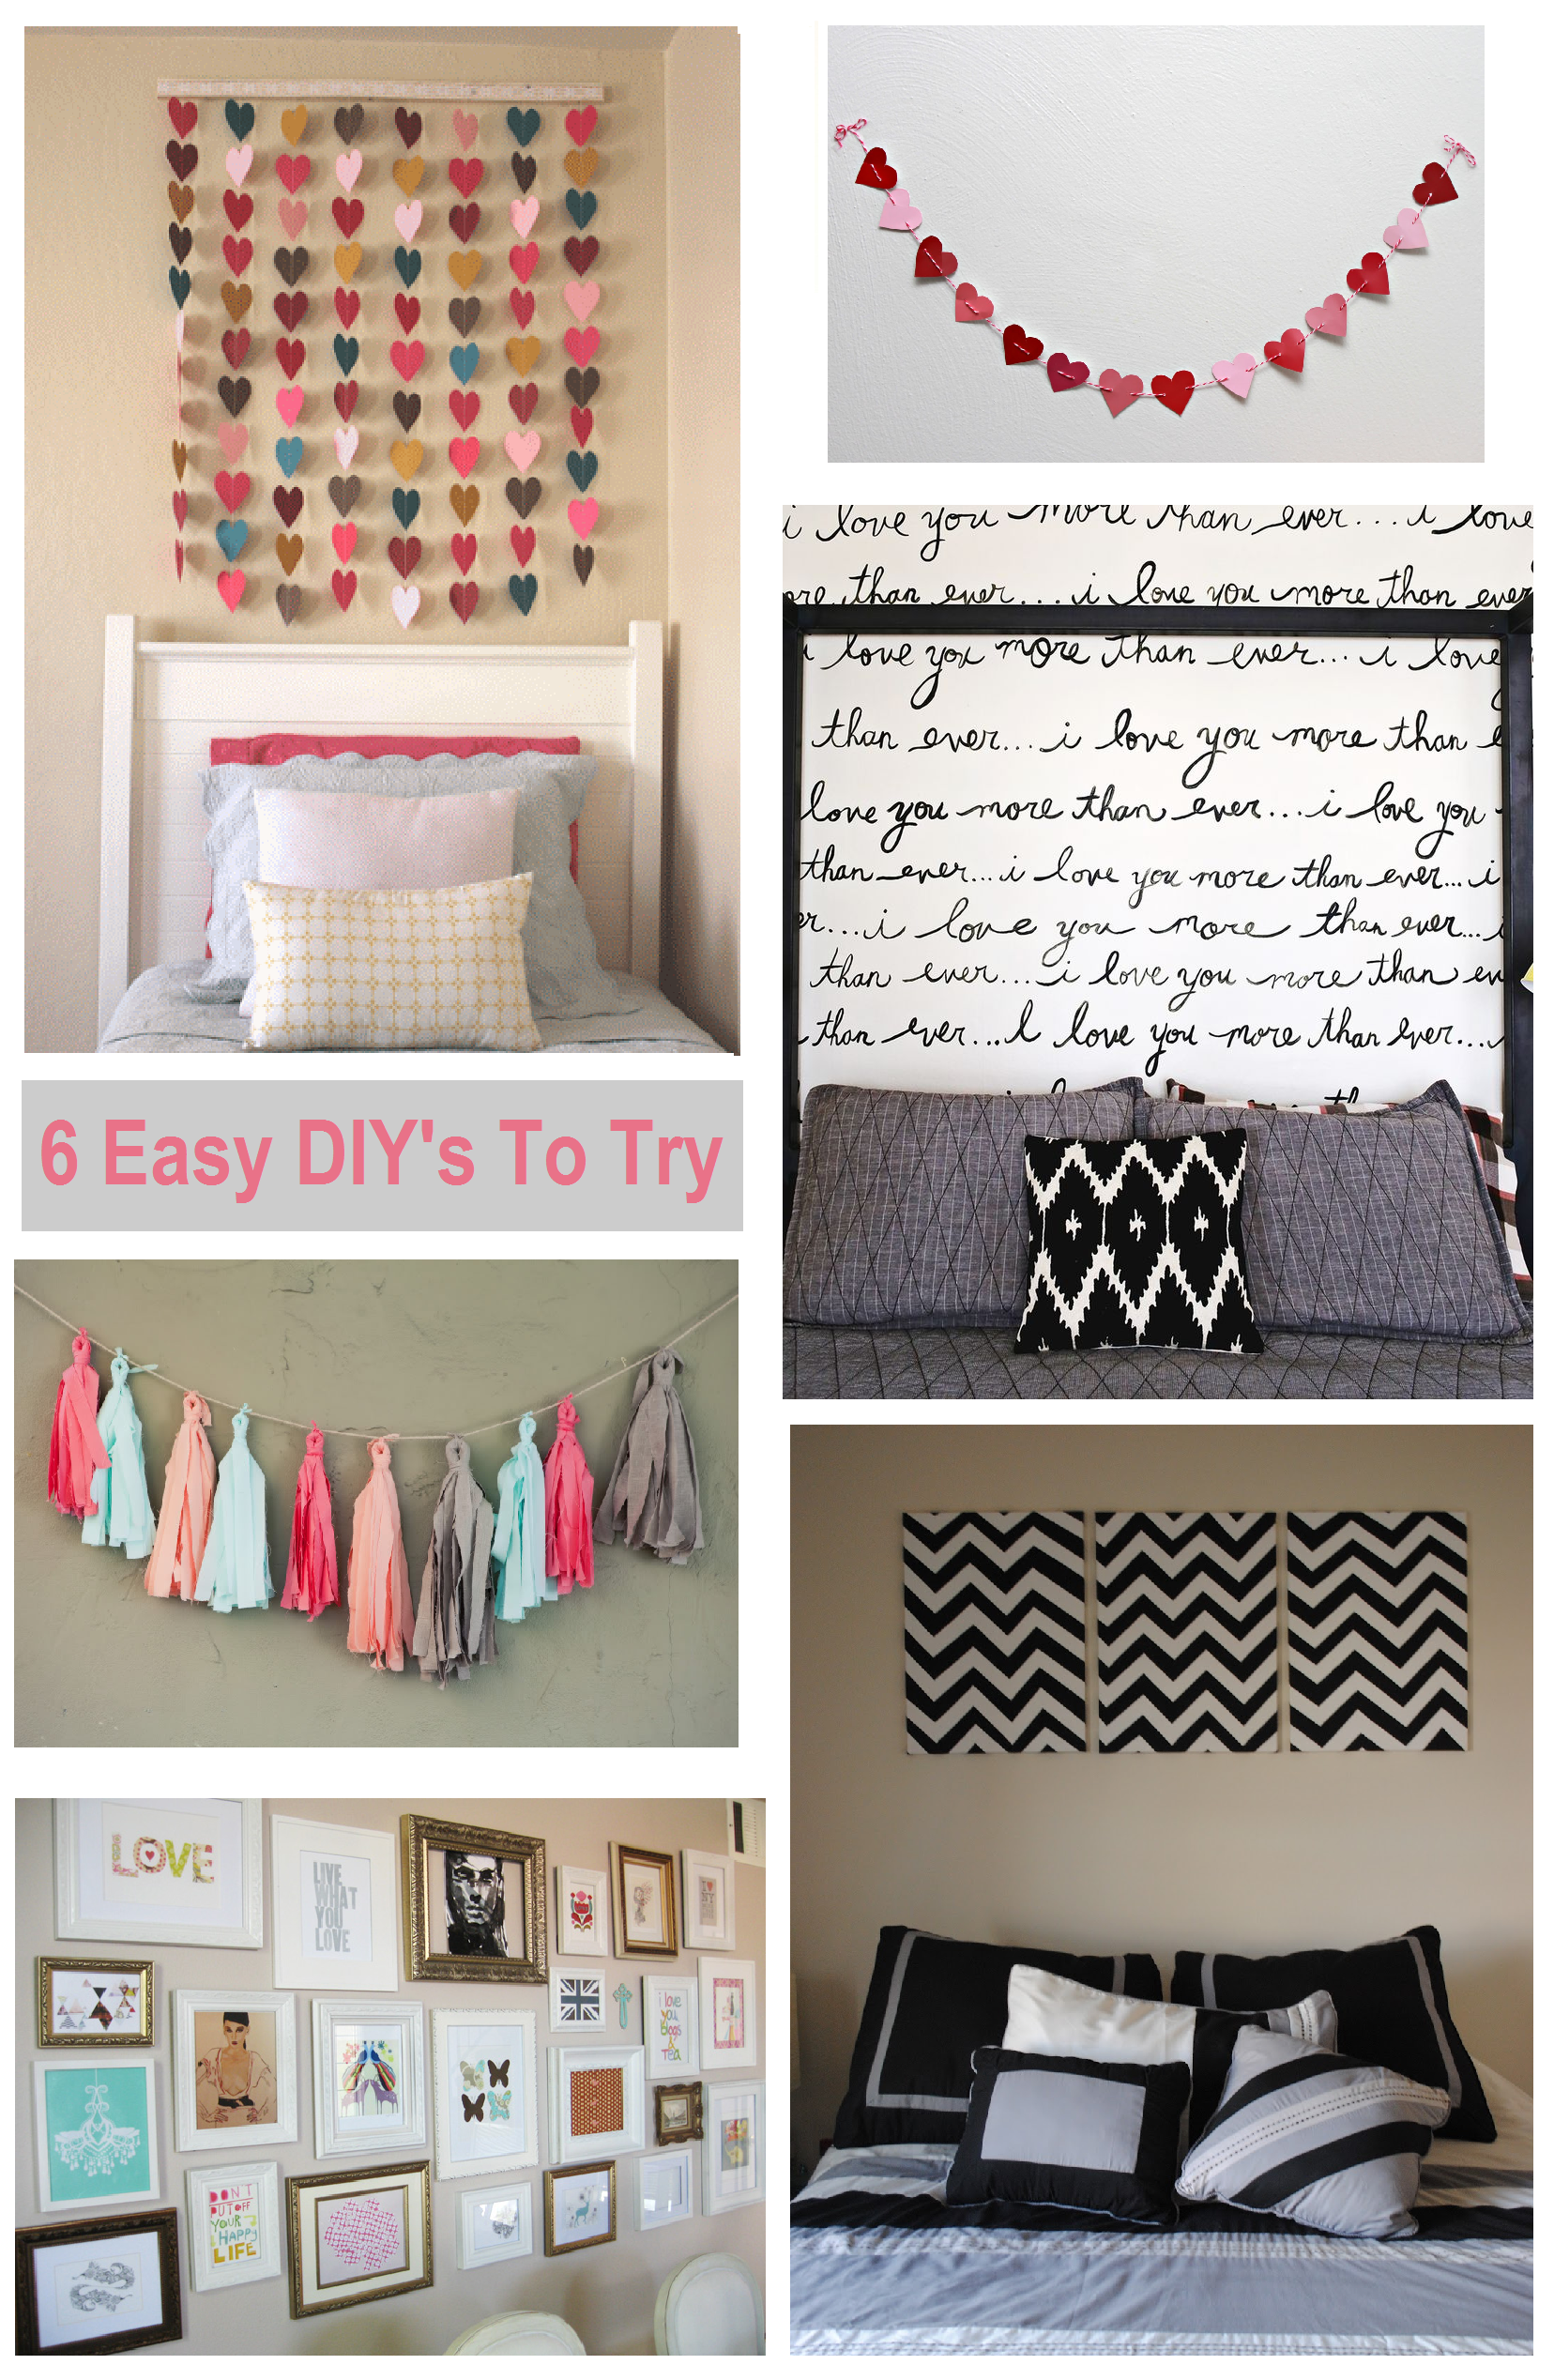 6 DIY Bedroom Wall Art Ideas | shopgirl